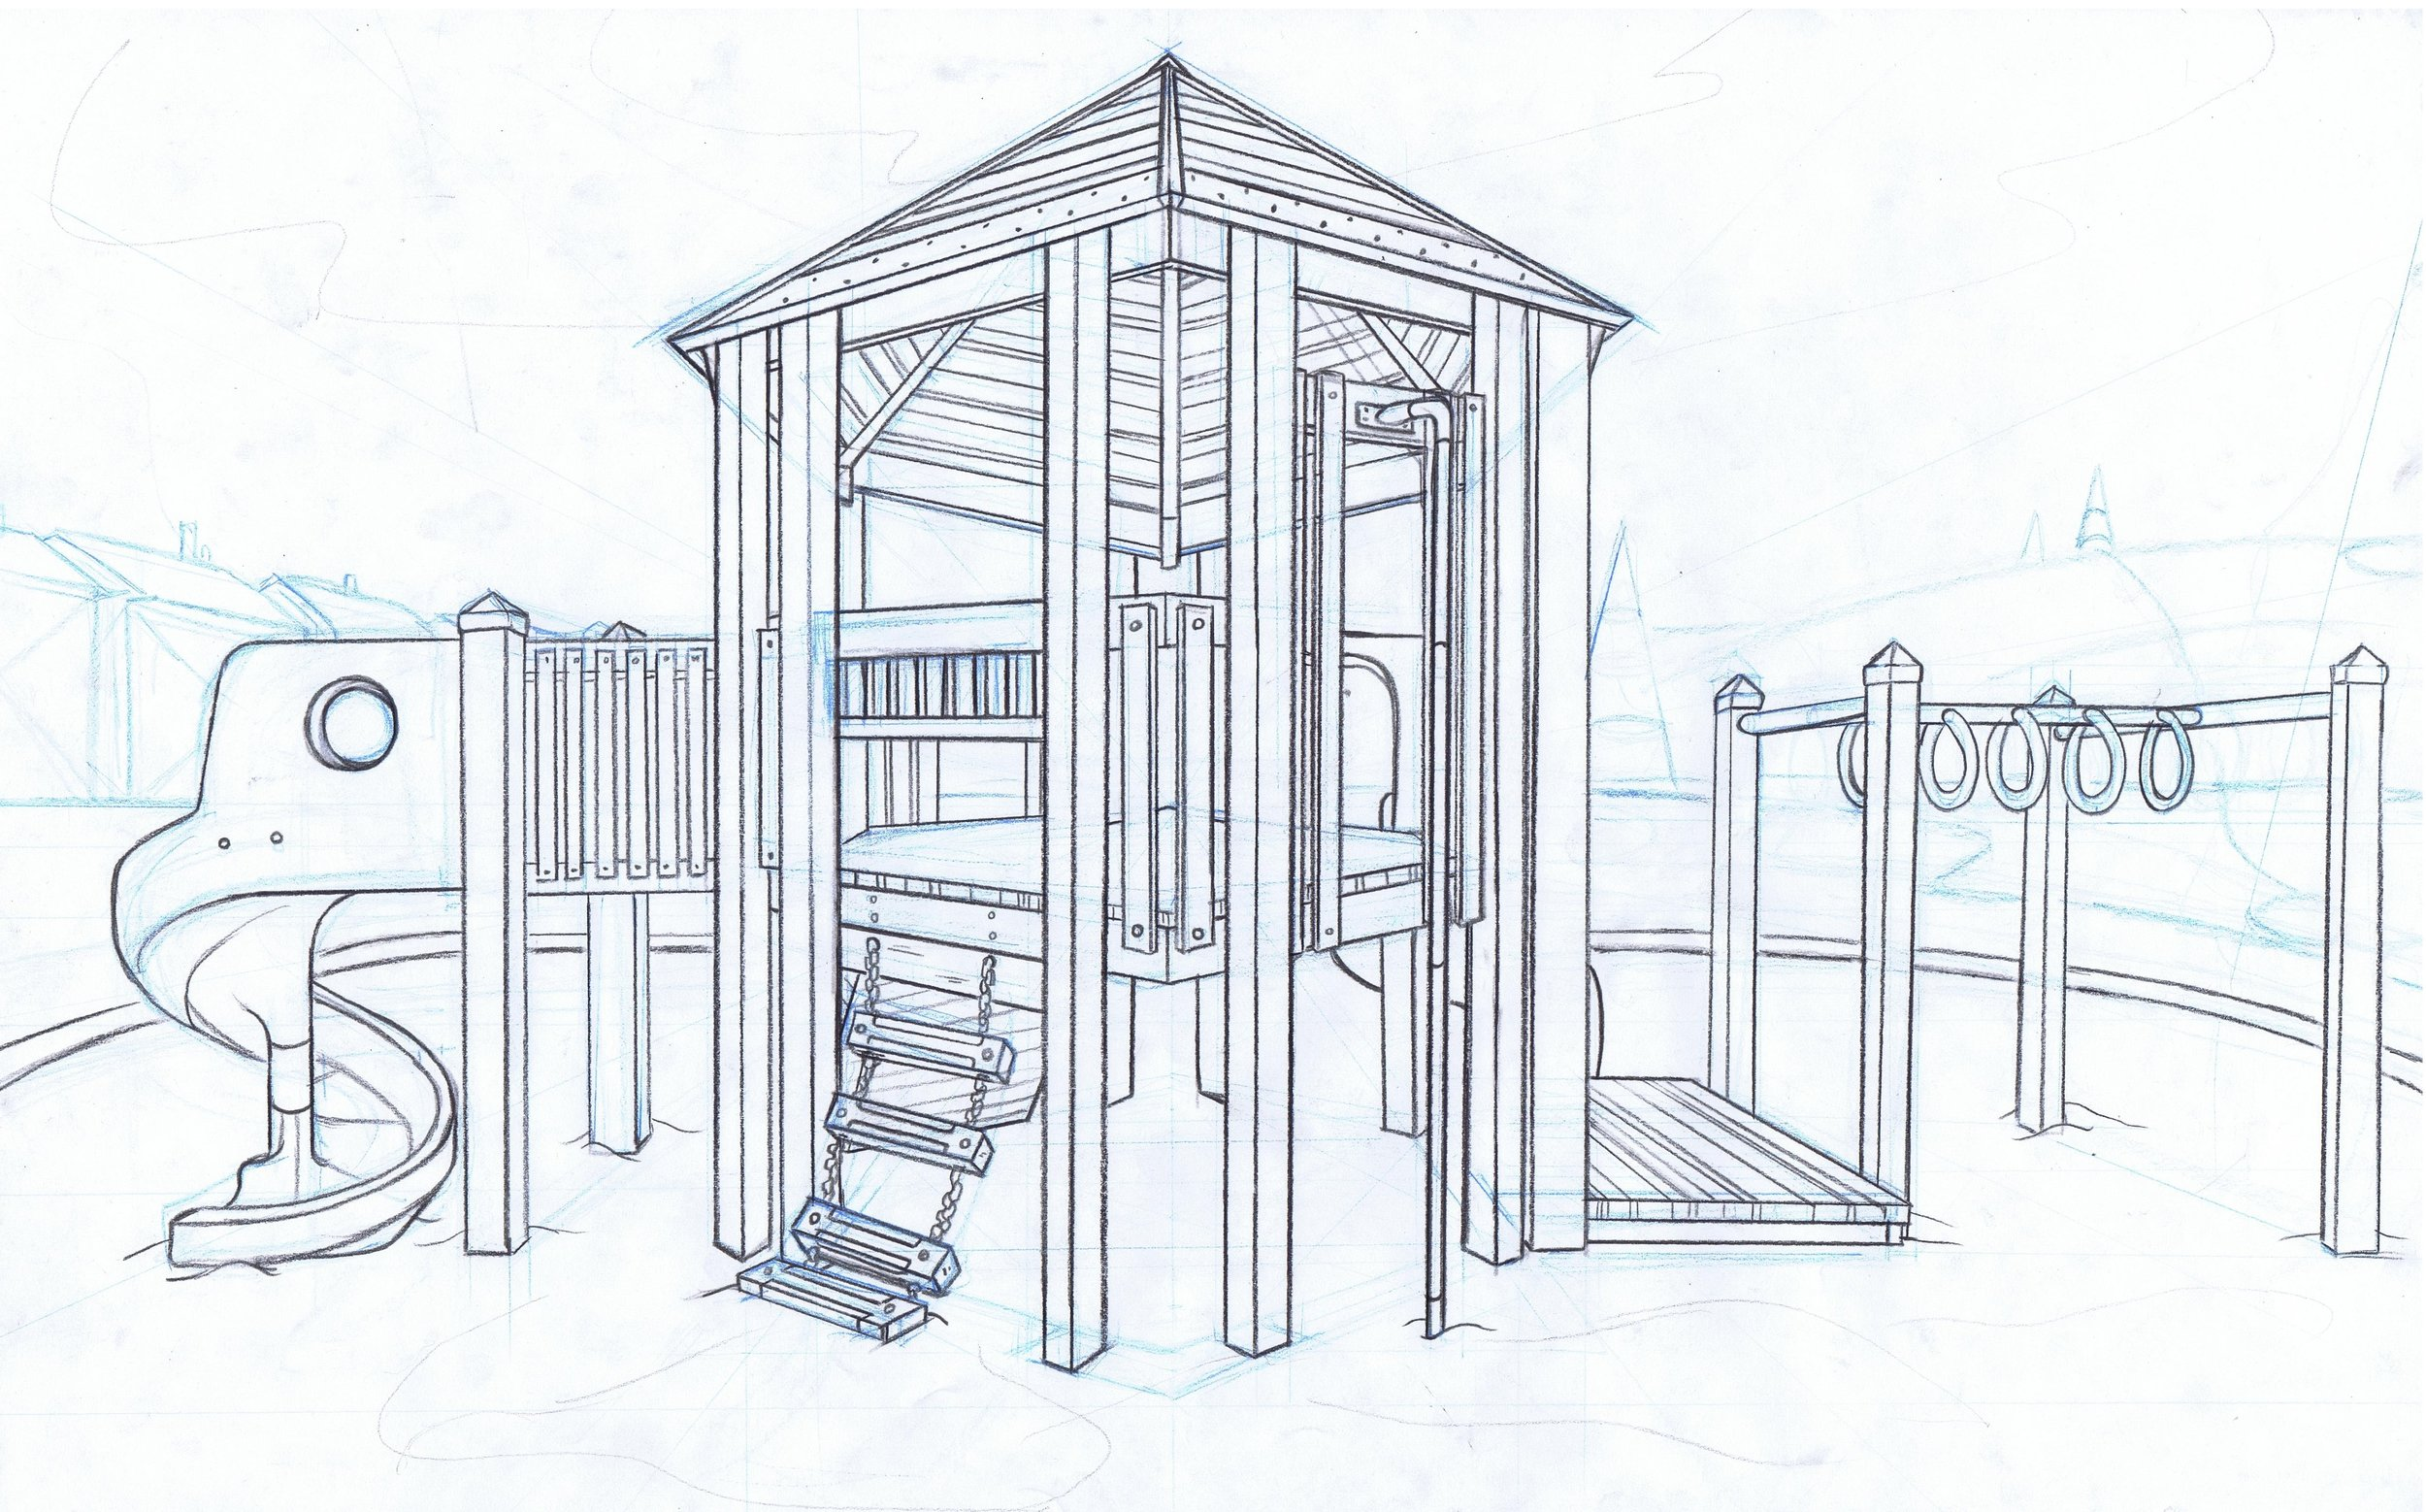 Liam_Stone_Perspective_Line_Drawing2.jpg